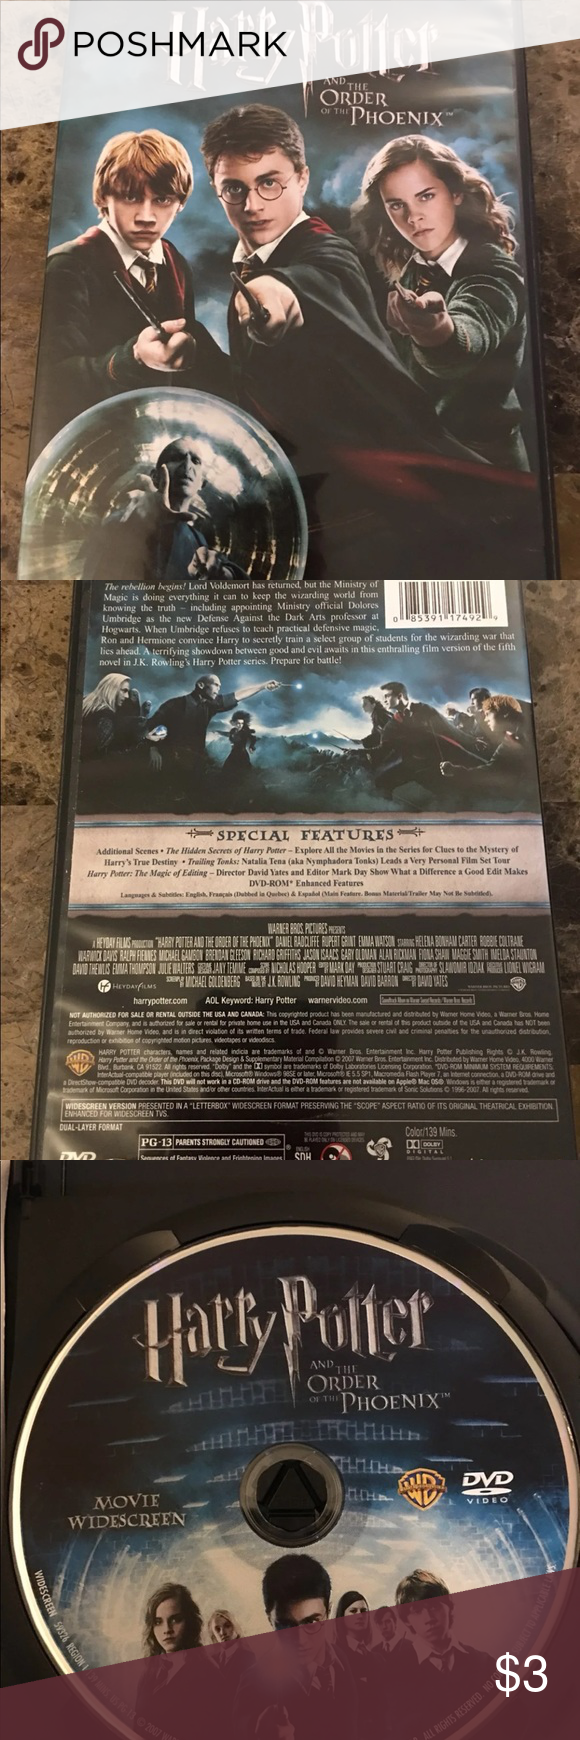 Harry Potter And The Order Of The Phoenix Minor Case Damage No Scratches On Dvd Other Harry Potter Harry Things To Sell